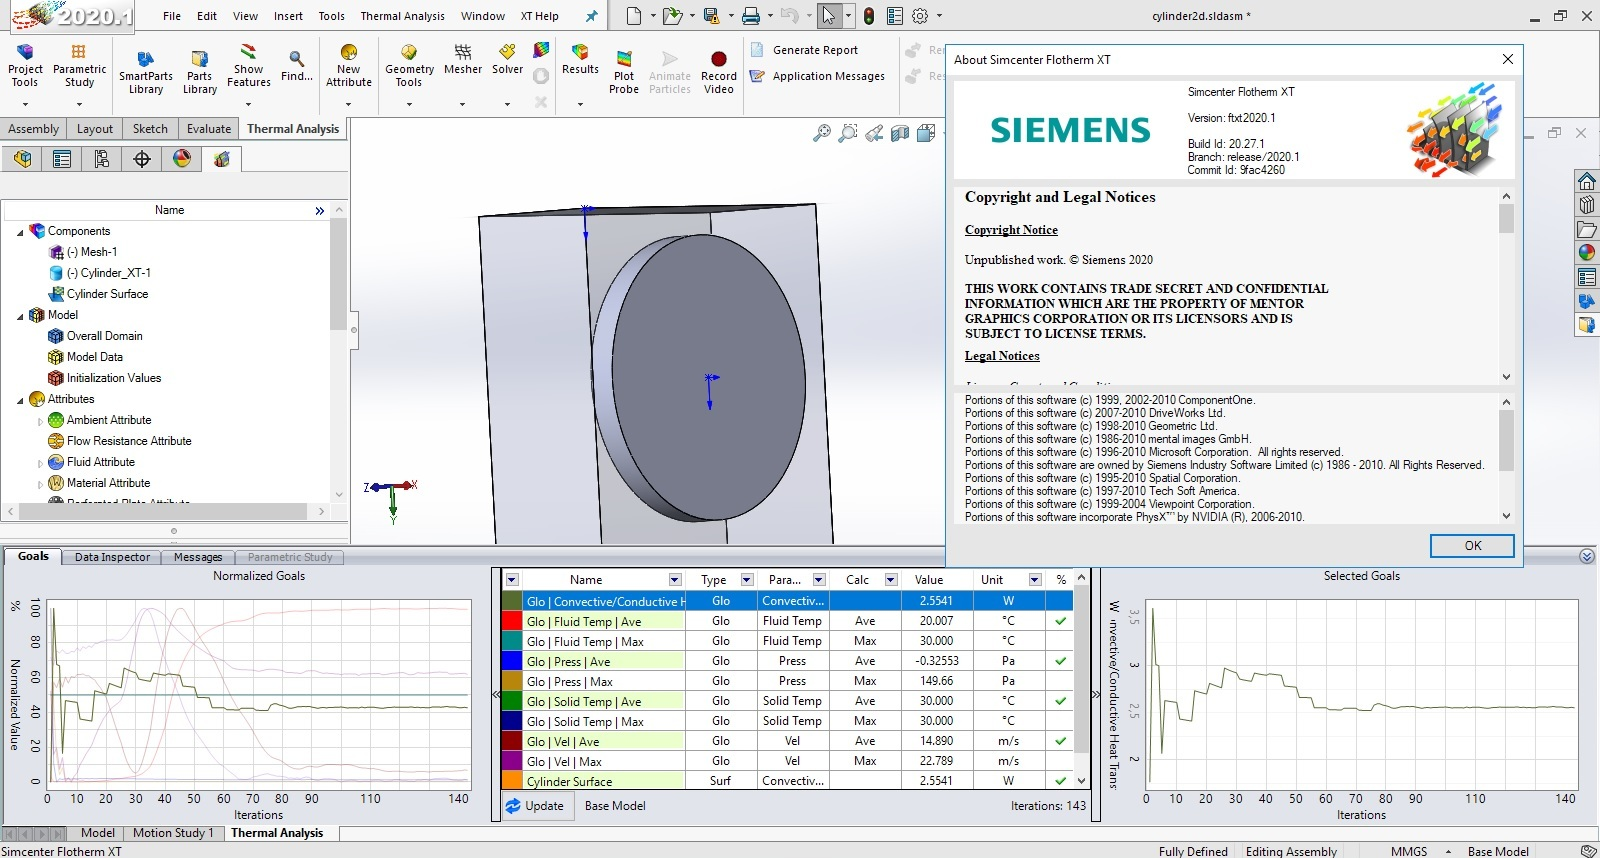 Working with Siemens Simcenter Flotherm XT 2020.1 full